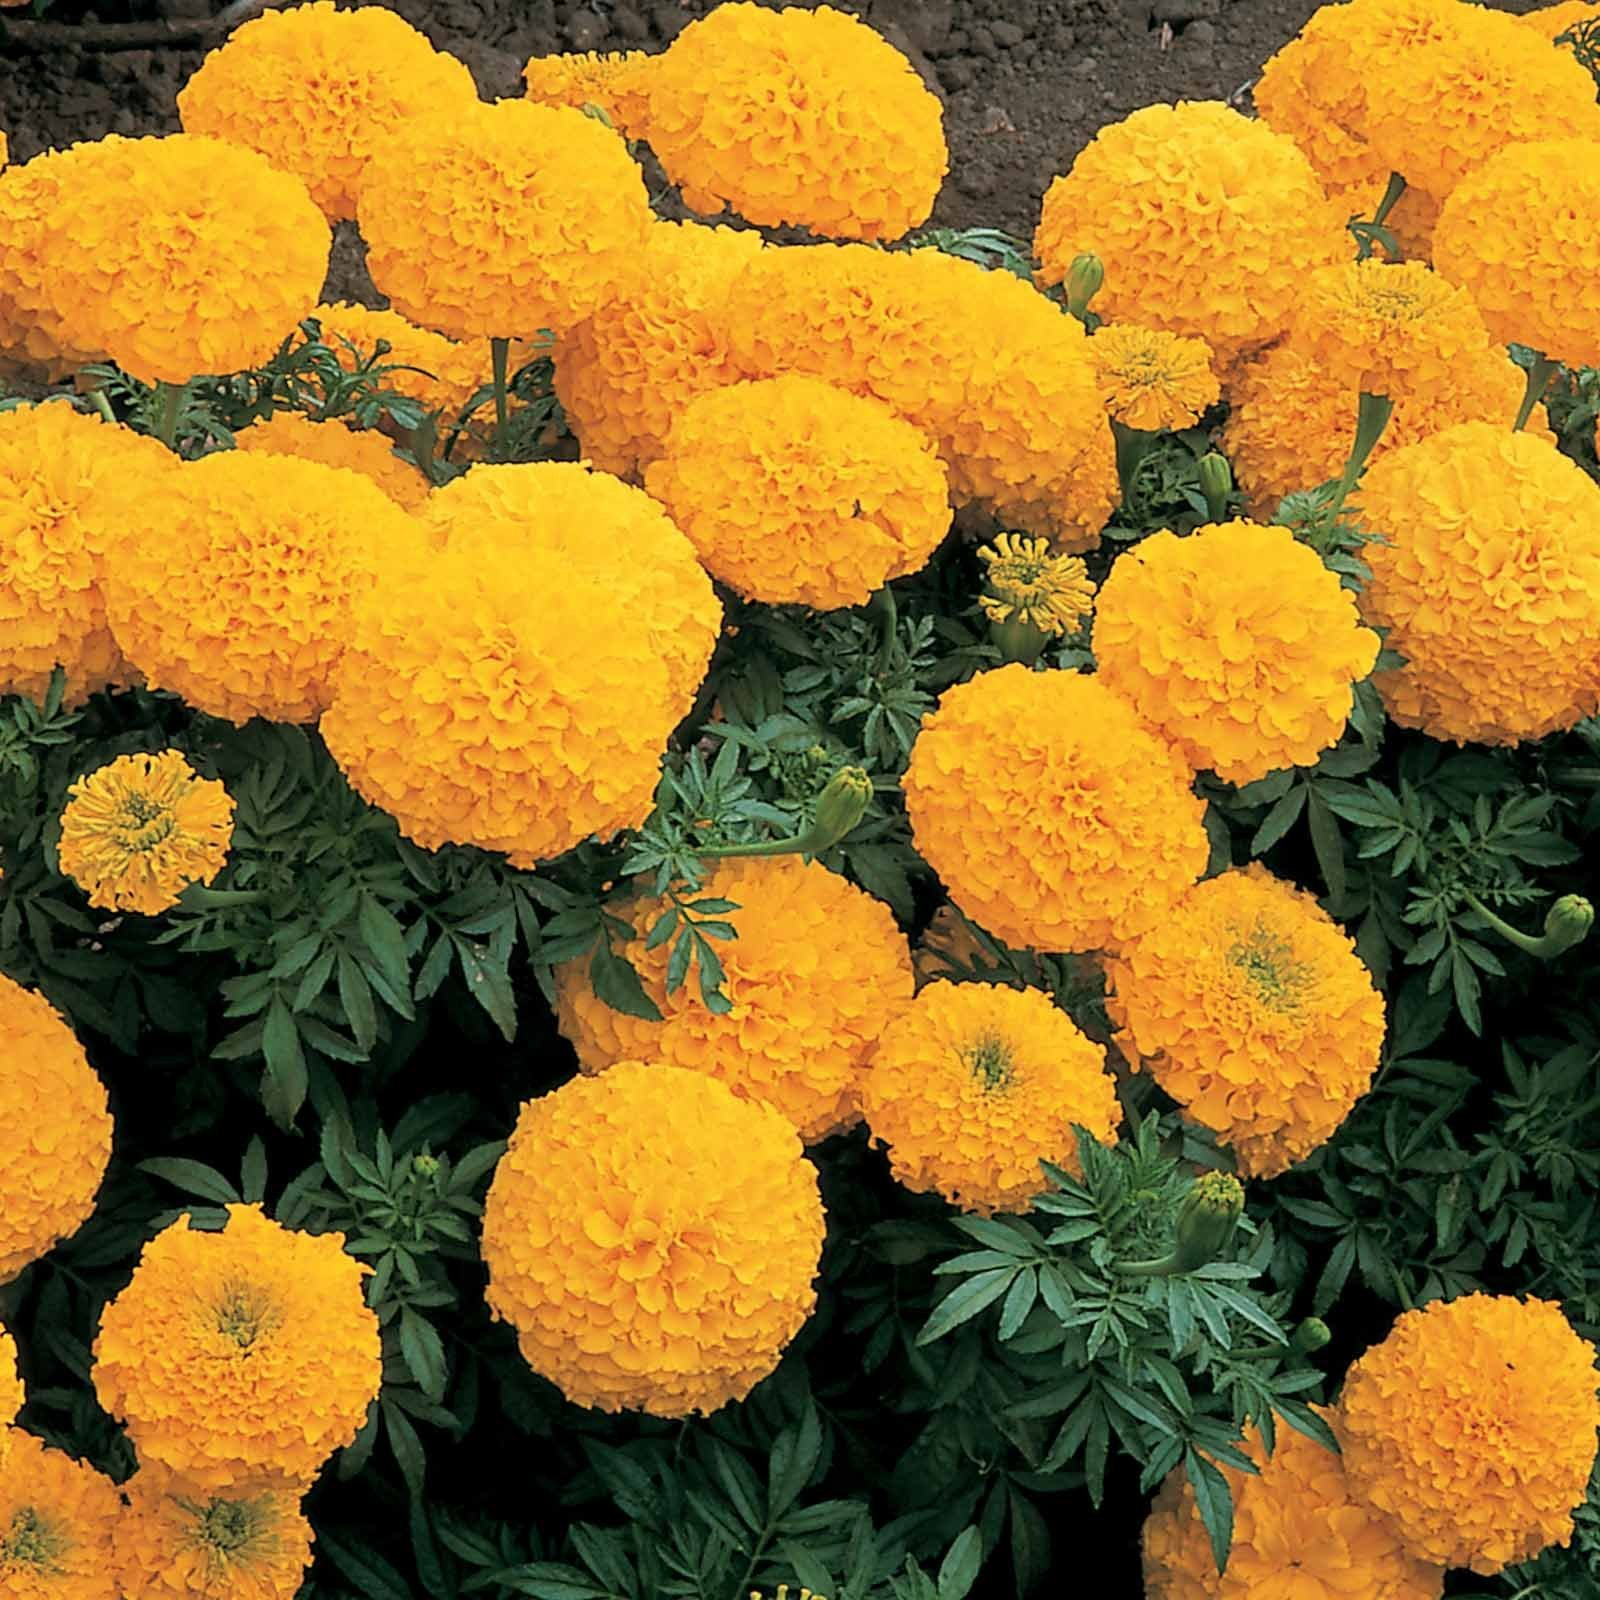 Amazon price history for African Marigold Double Orange Flower Seeds with Free 3 Piece Agropeat Soil for Good Seeds Germination by Kraft Seeds